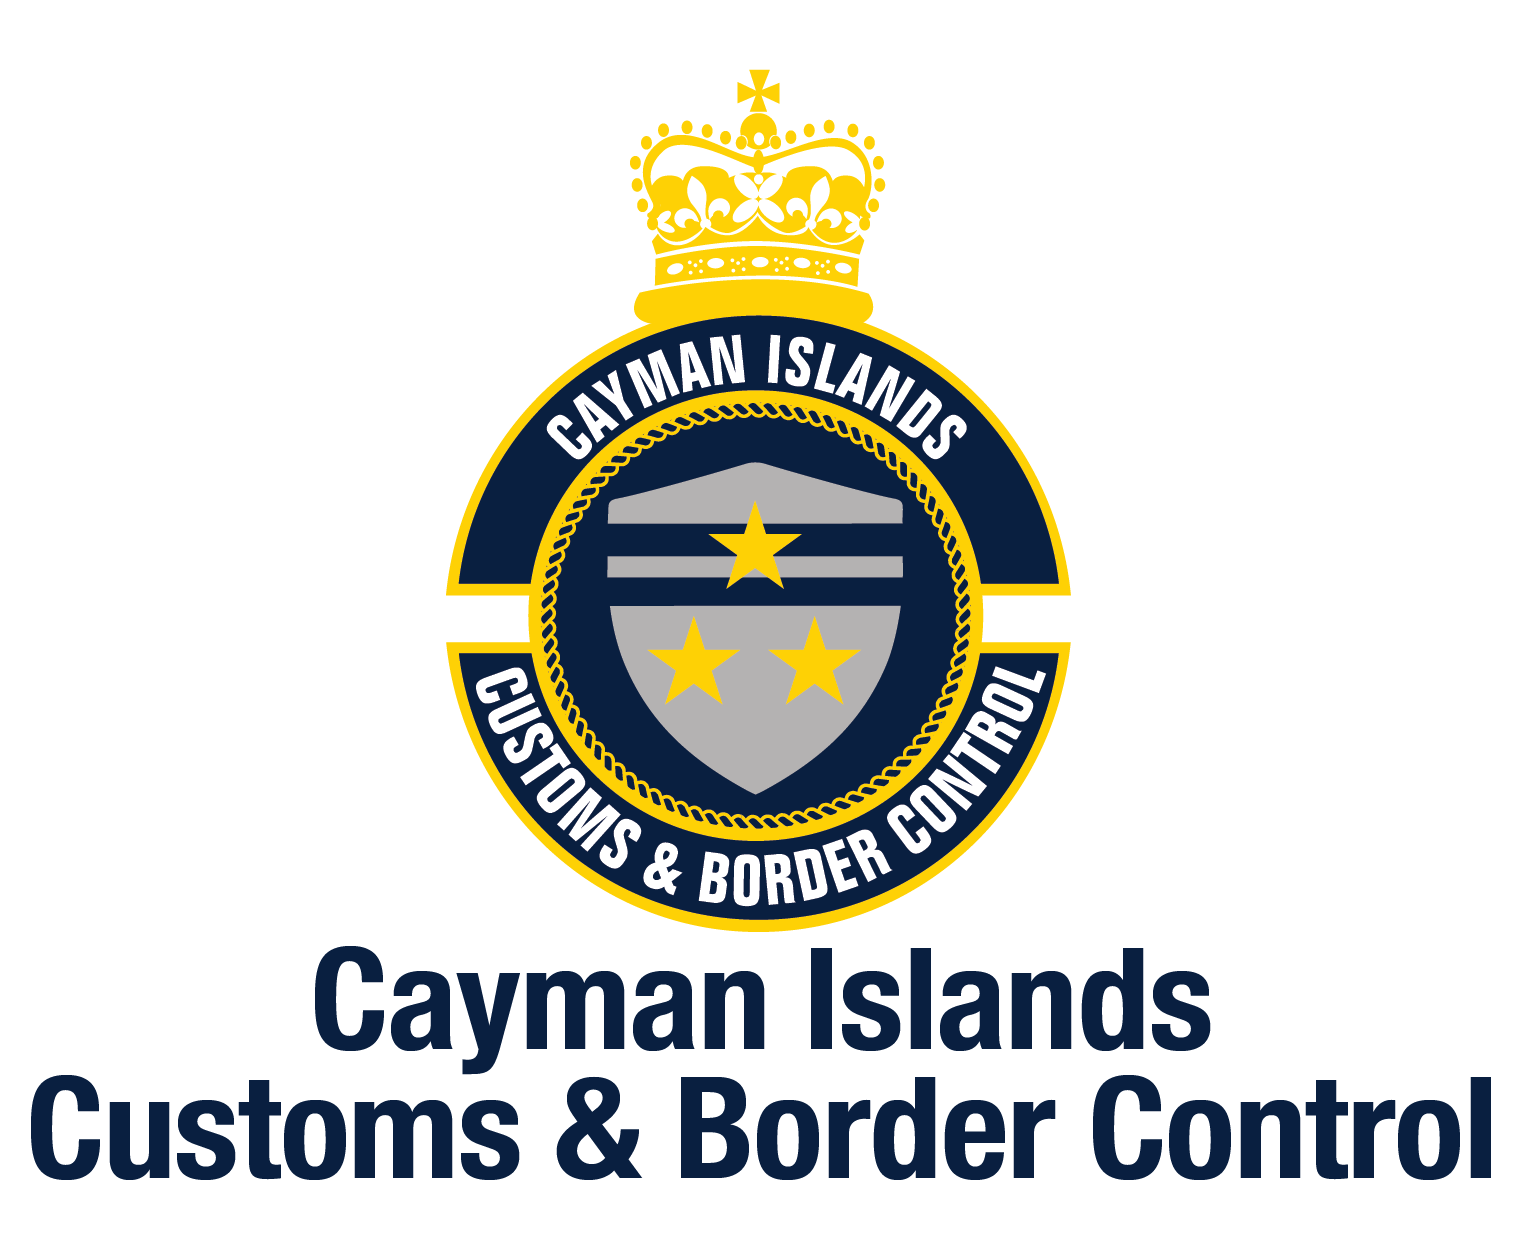 The new logo signifies the ongoing, collaborative commitment of the DOI and Customs to protect and serve as a unified frontline agency.